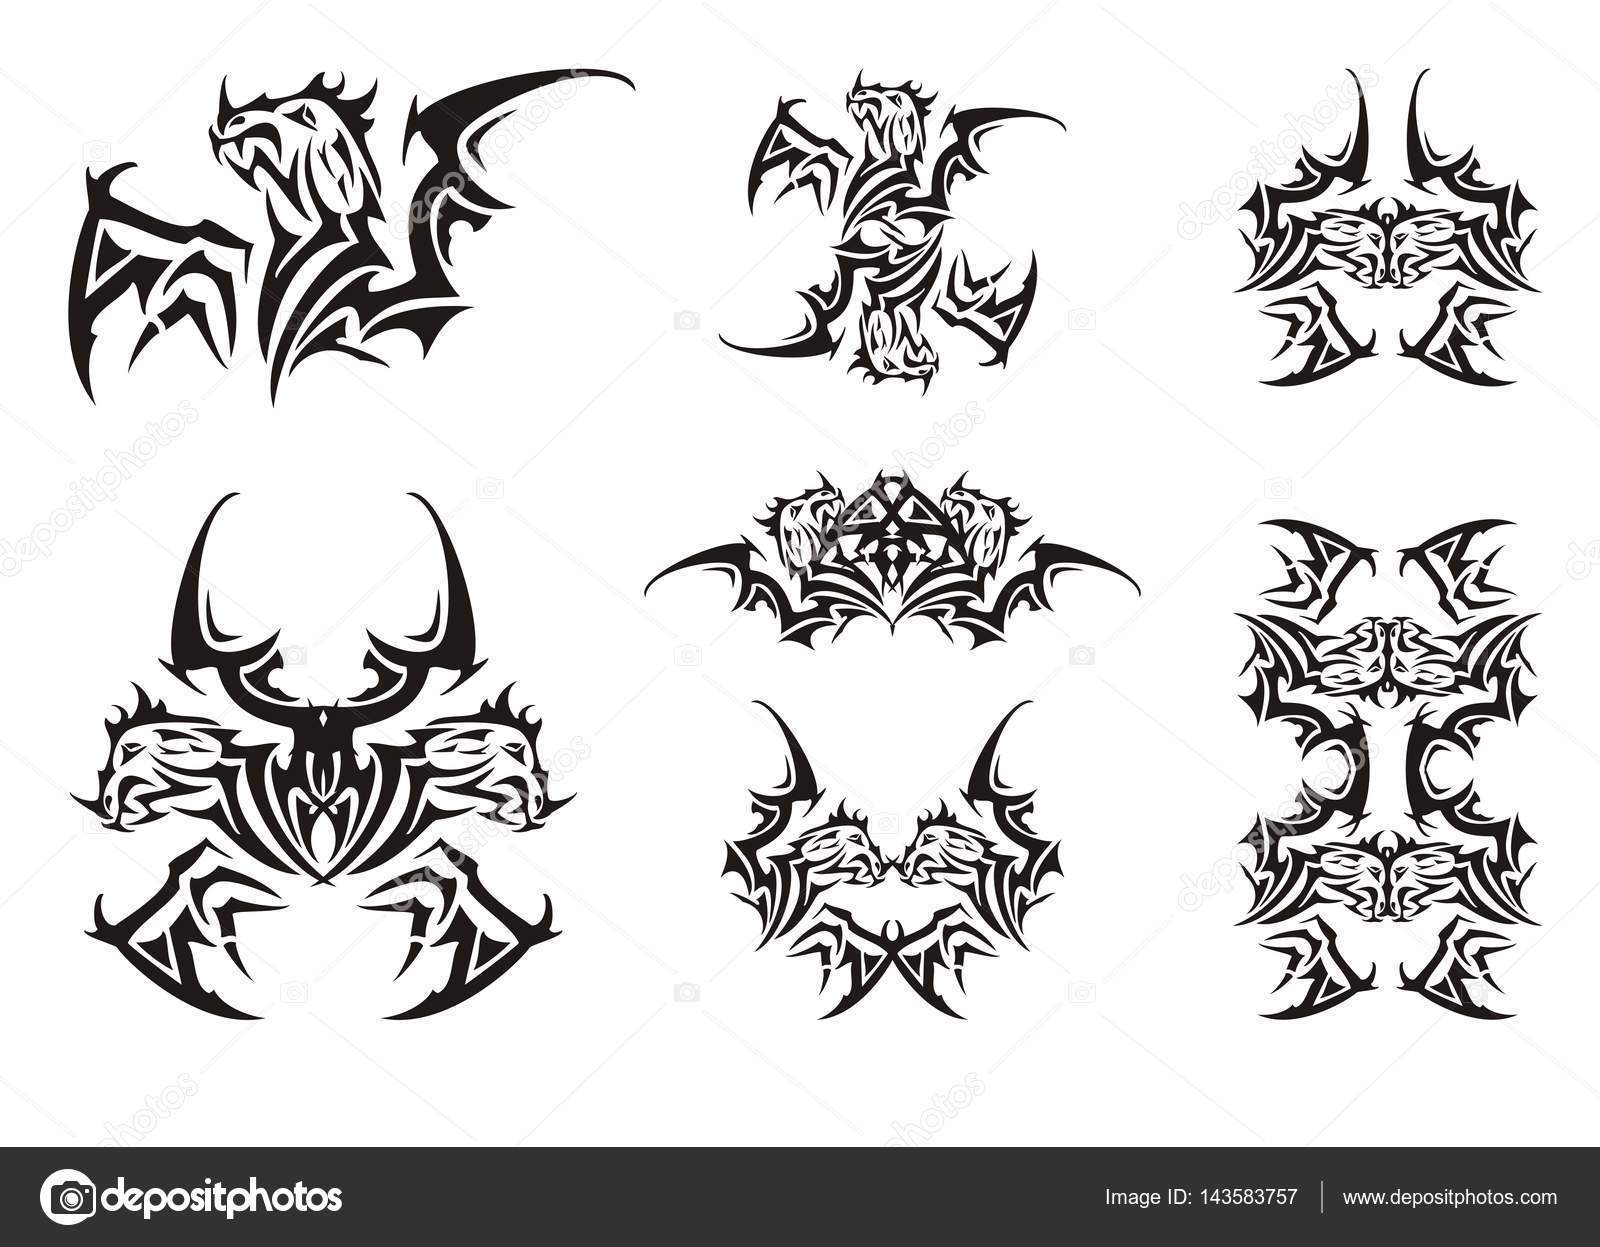 Peaked winged dragon symbols in tribal style stock vector peaked winged dragon symbols in tribal style stock vector buycottarizona Gallery